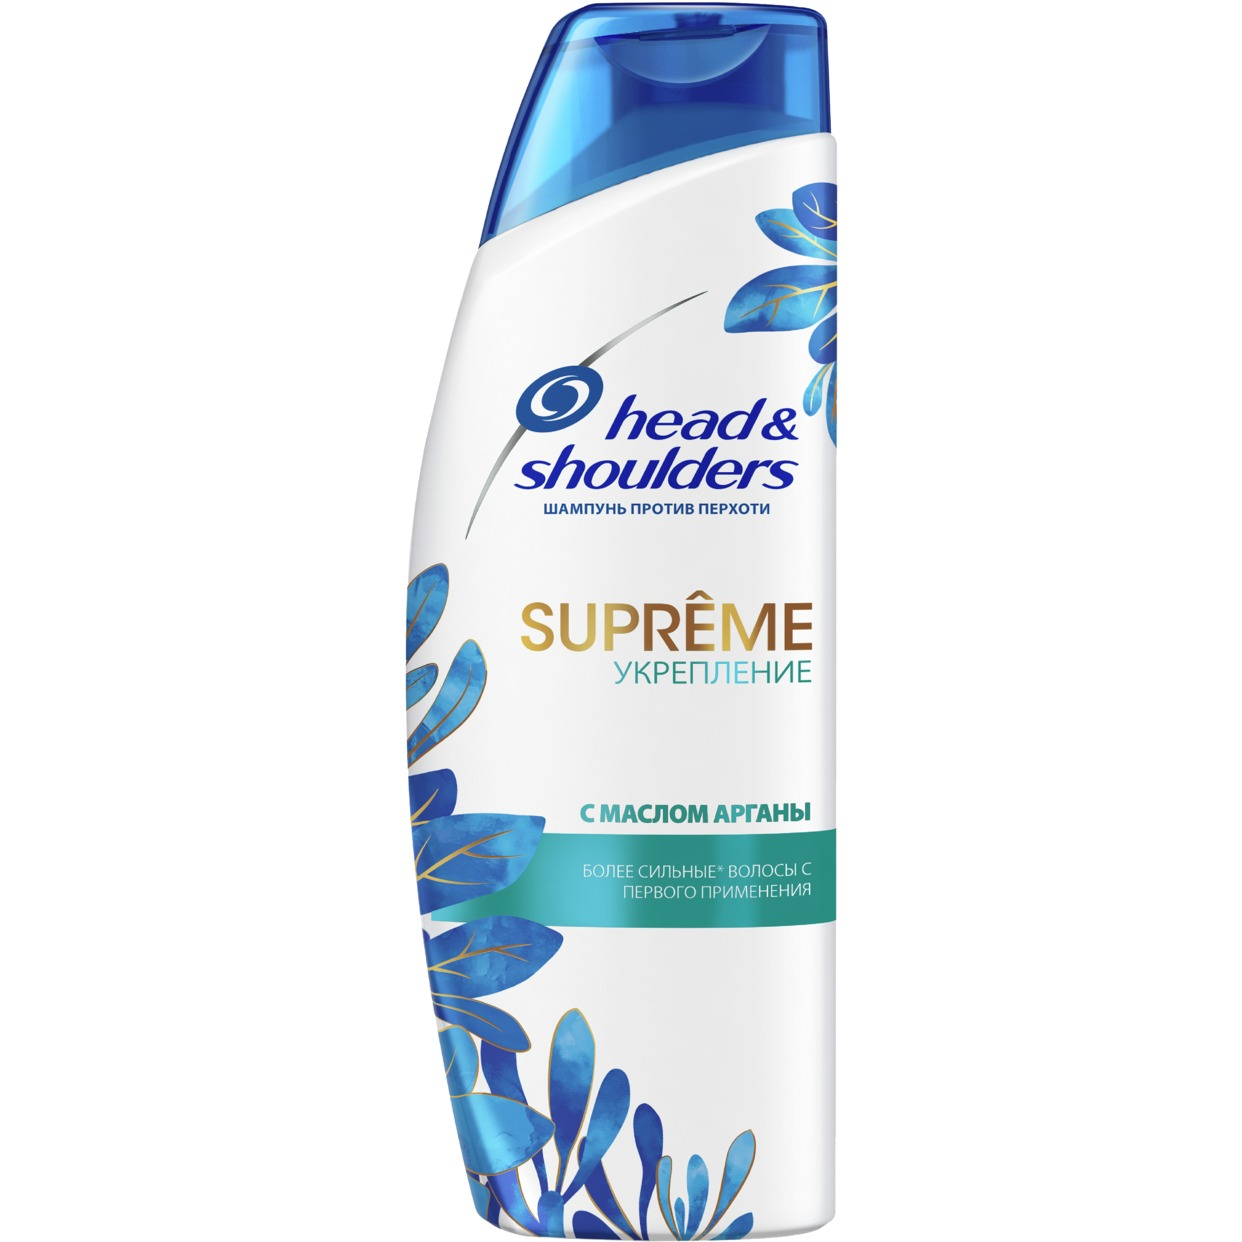 Шампунь против перхоти HEAD&SHOULDERS Supreme Укрепление 300мл